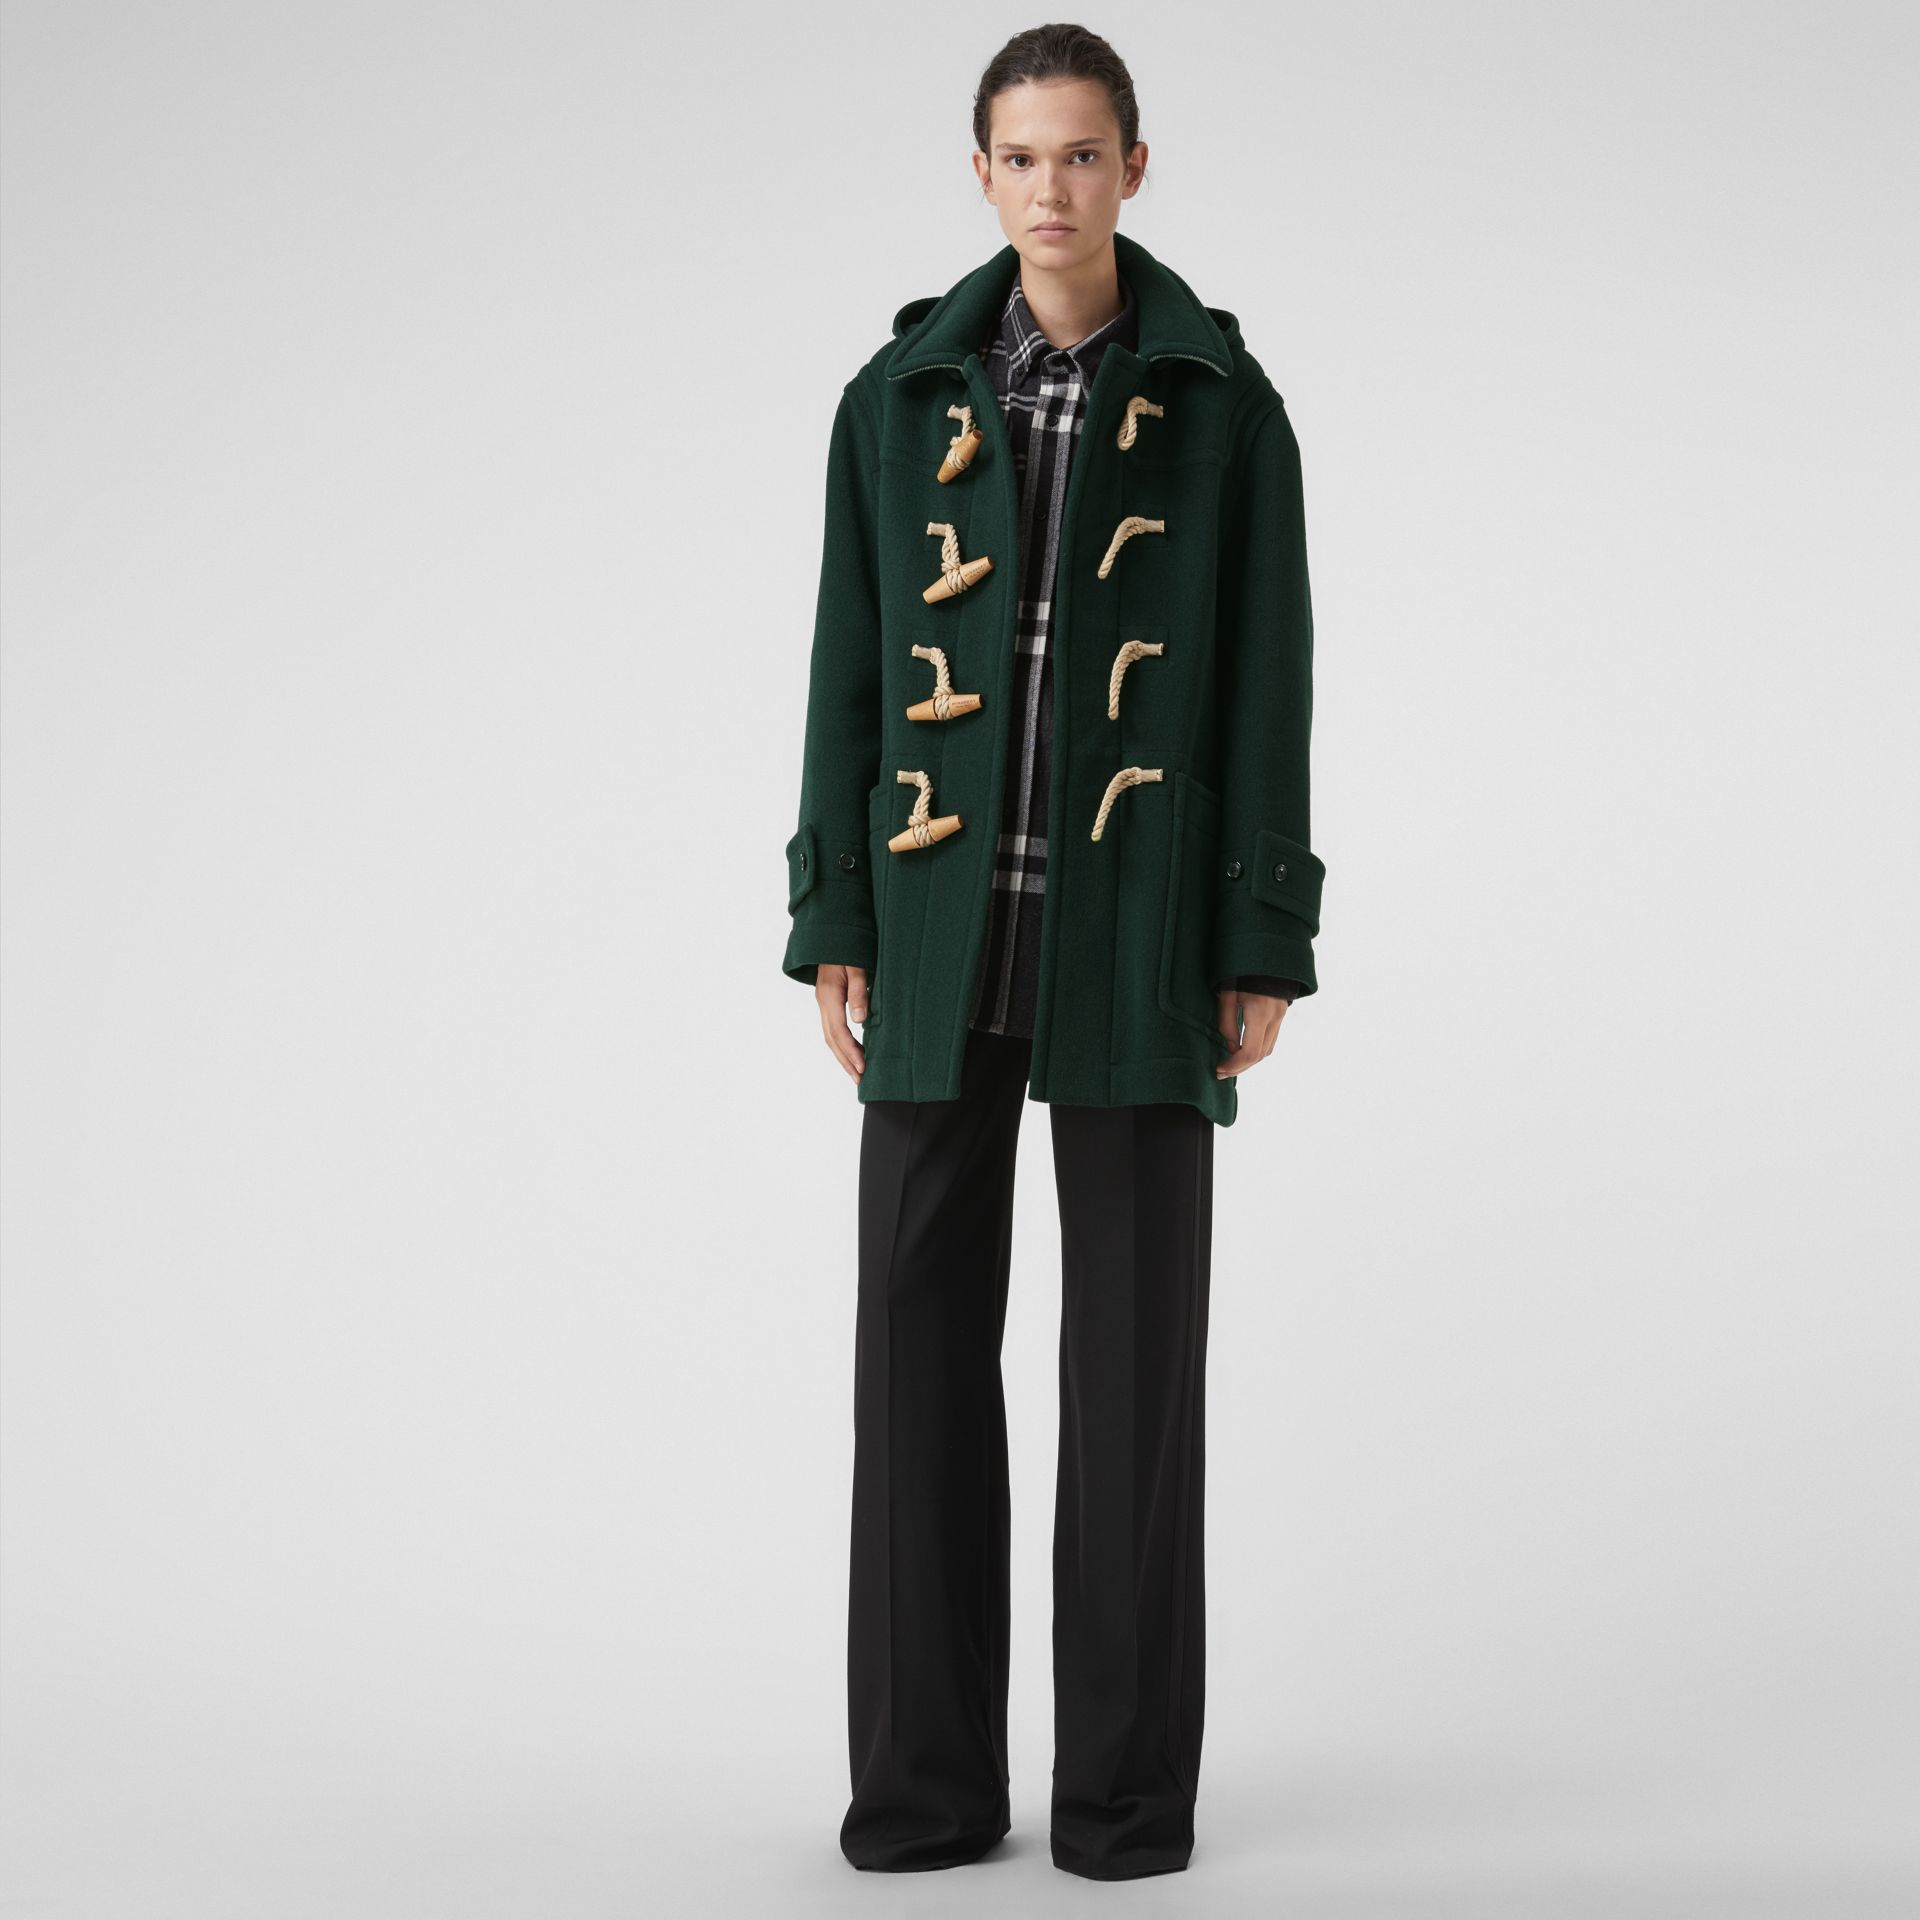 Gosha x Burberry Oversized Duffle Coat in Dark Forest Green | Burberry - gallery image 2